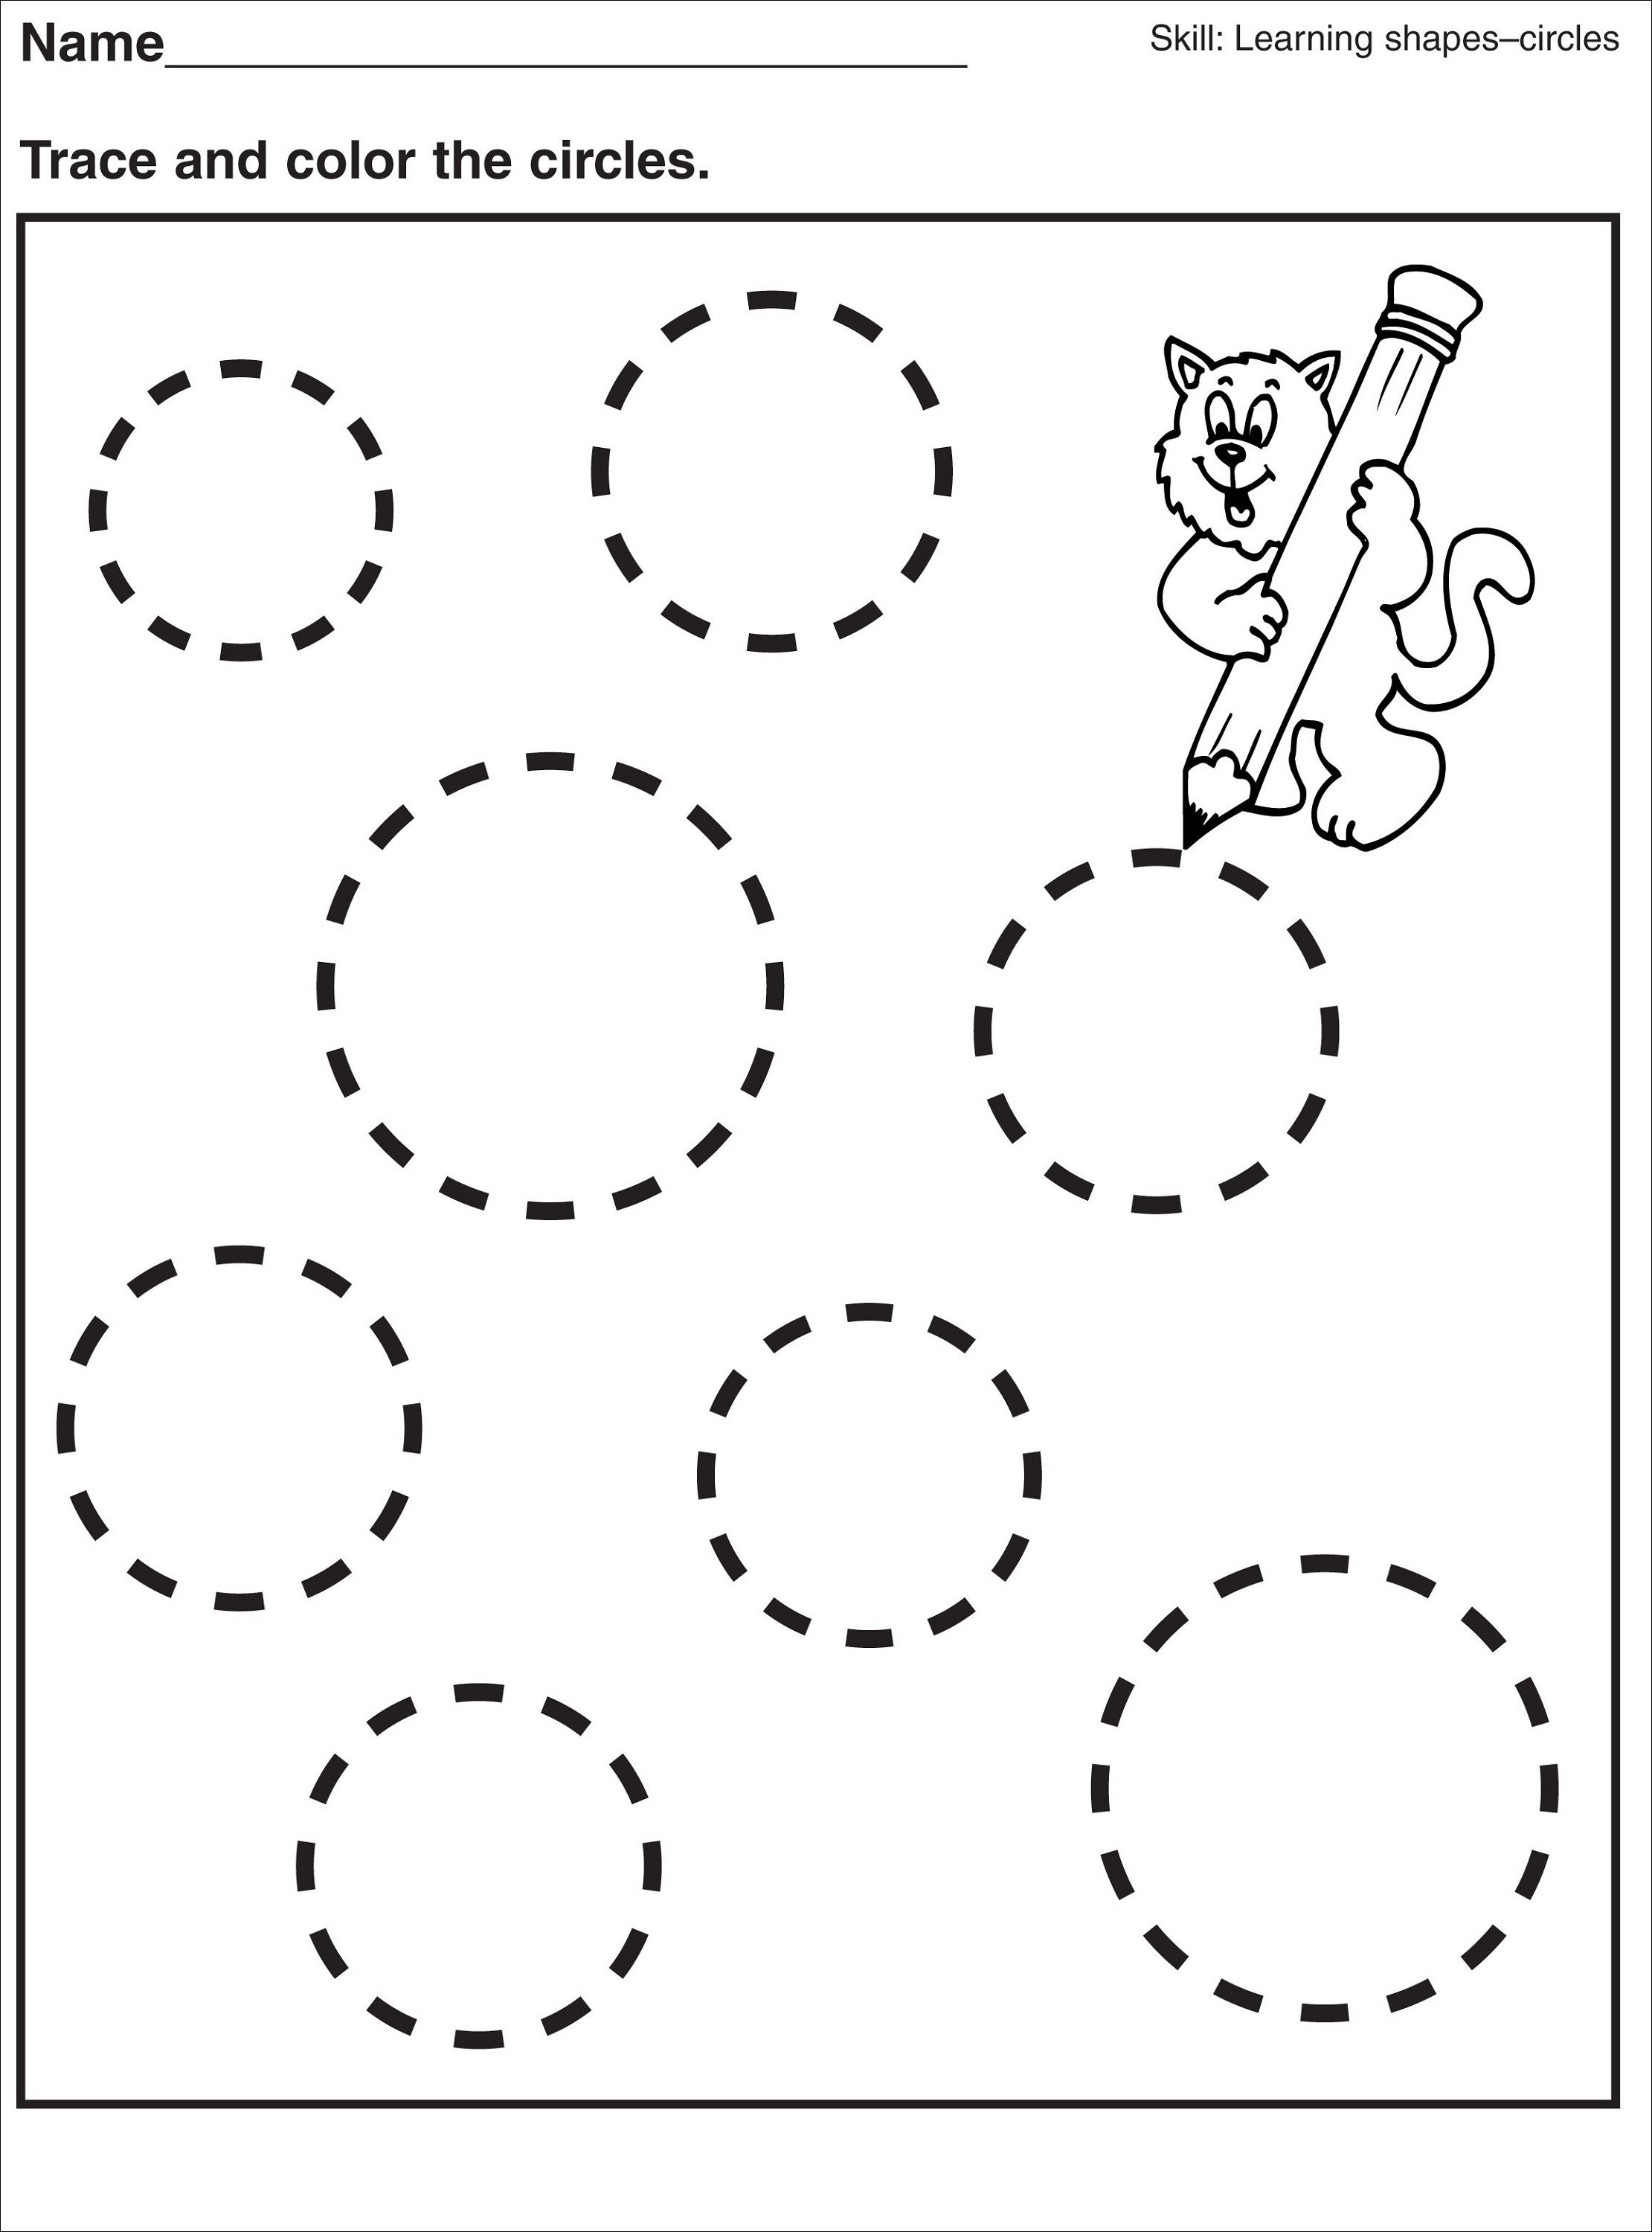 Tracing Circle Worksheets For Preschool